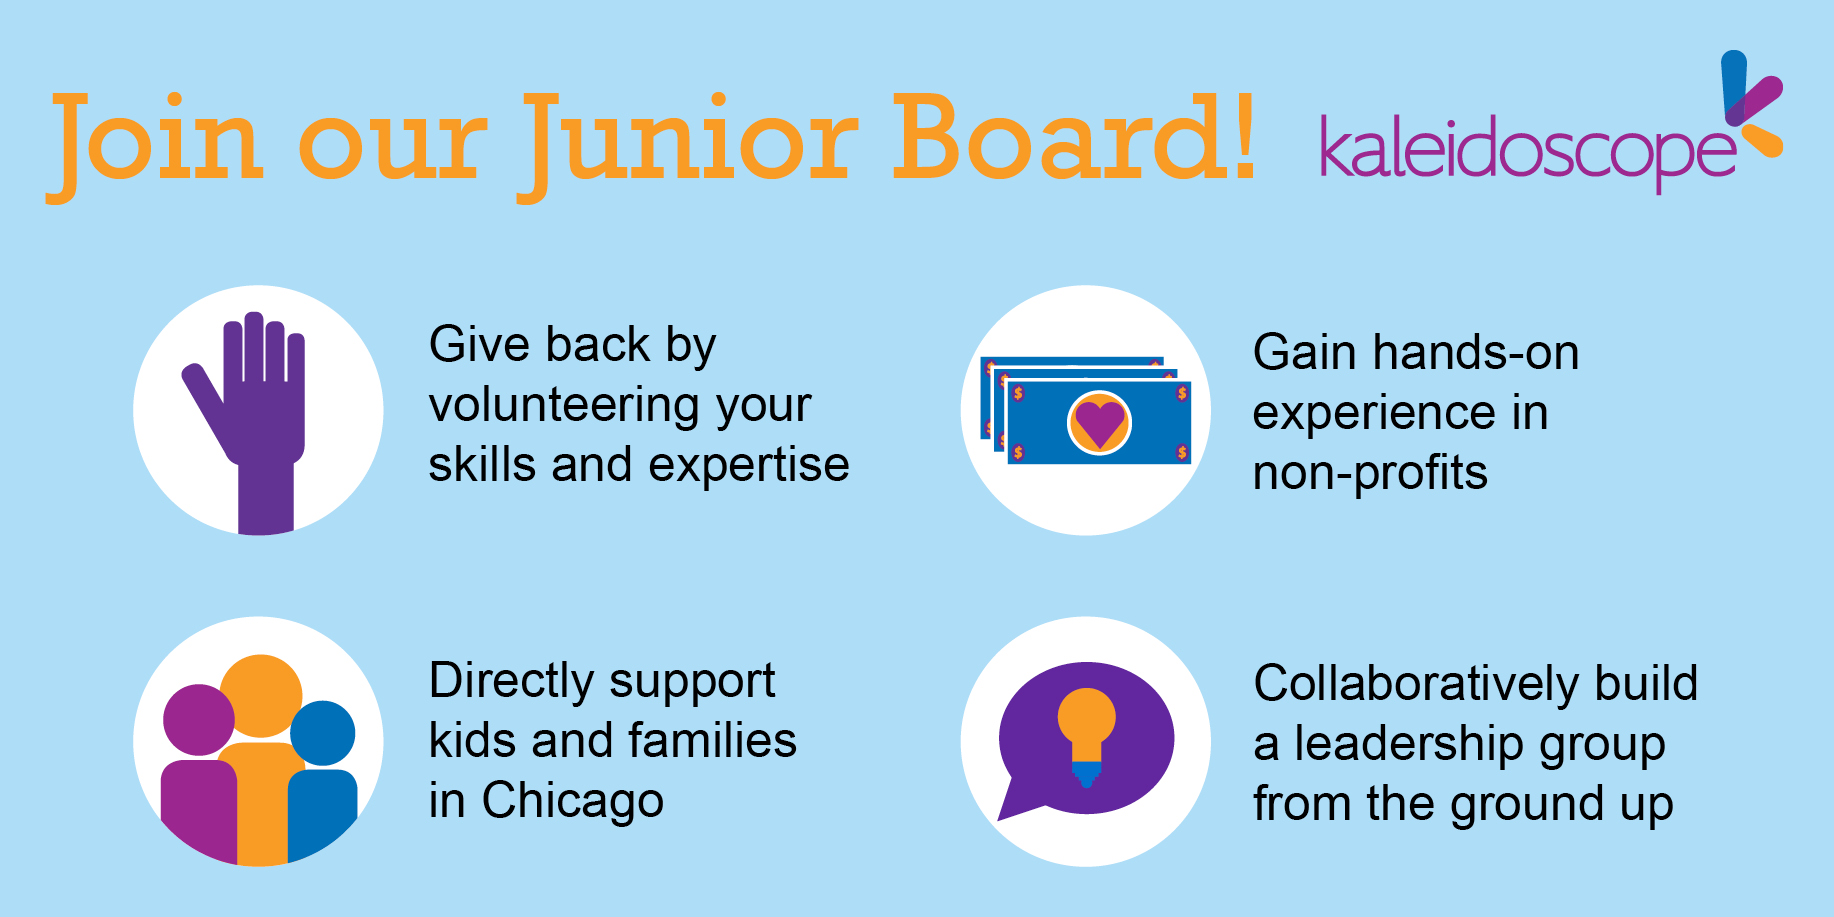 kaleidoscope-fb-preview-junior-board